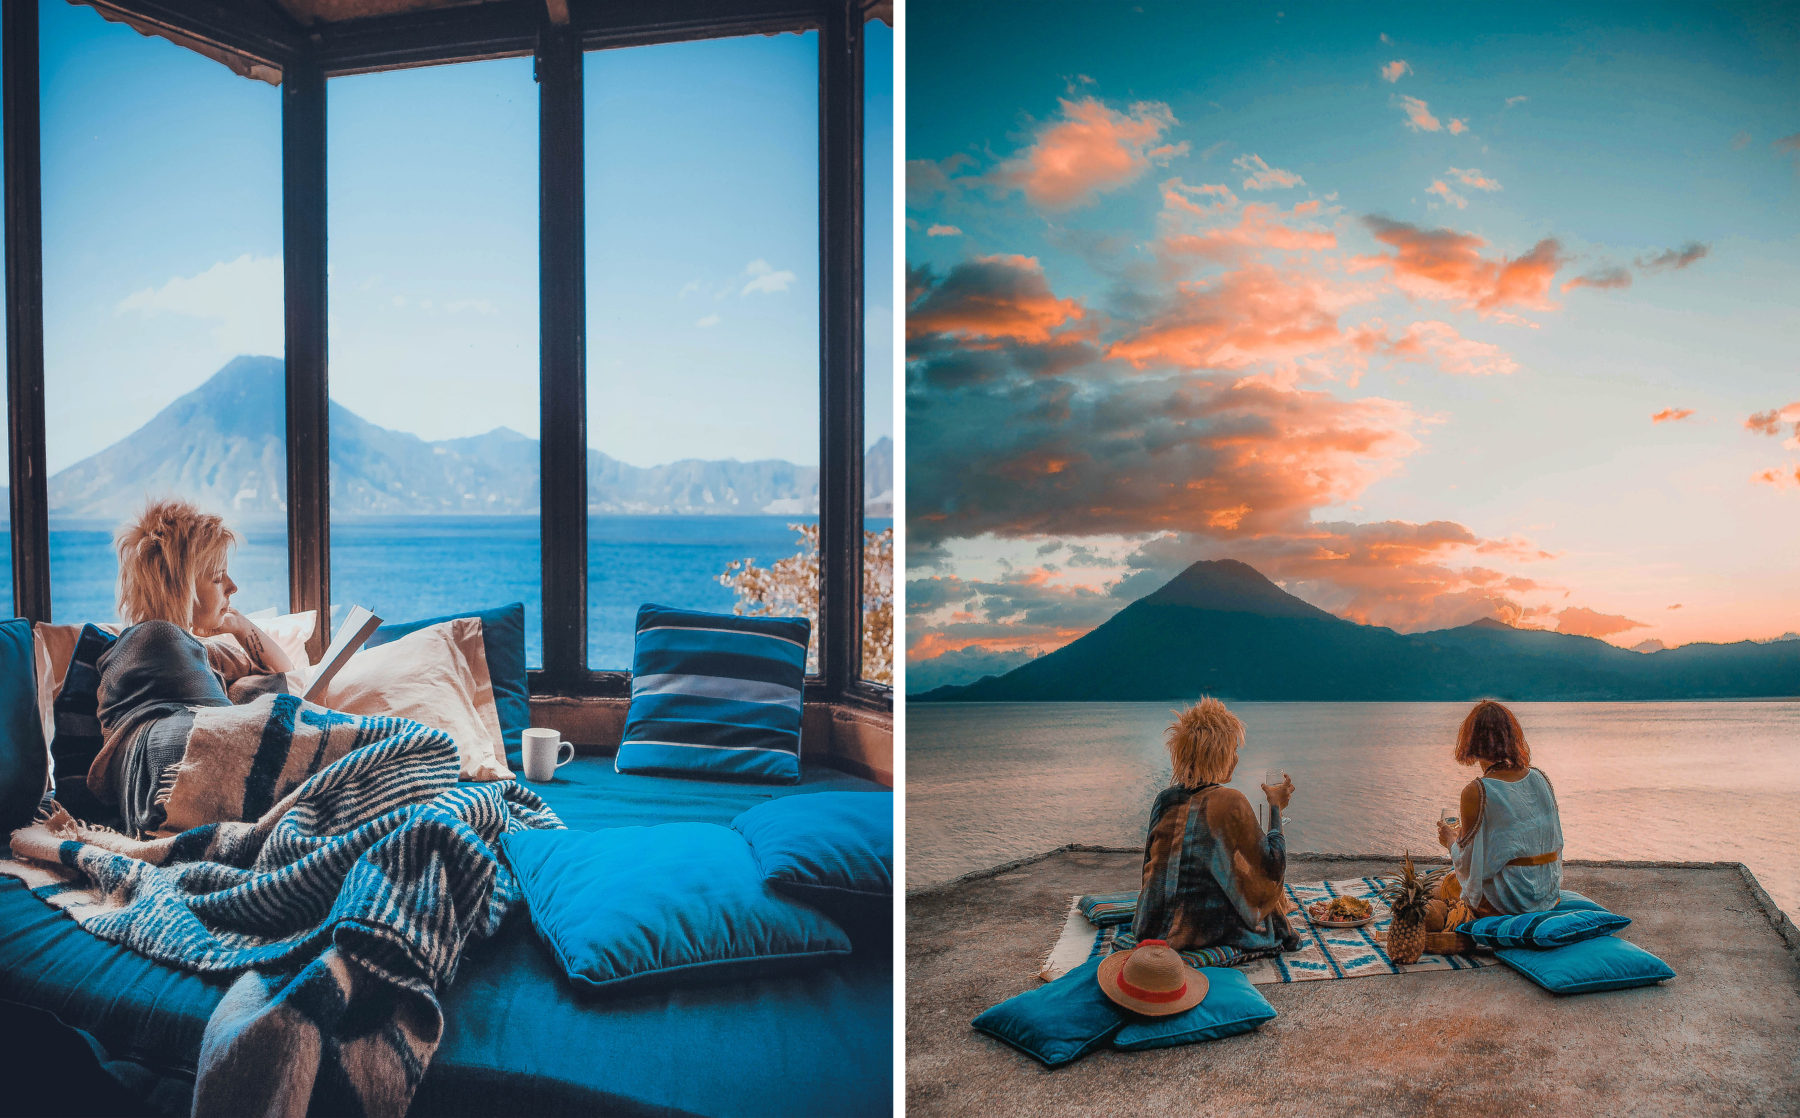 guatemala lake atitlan lago central america most beautiful lake in the world blue water sunny day